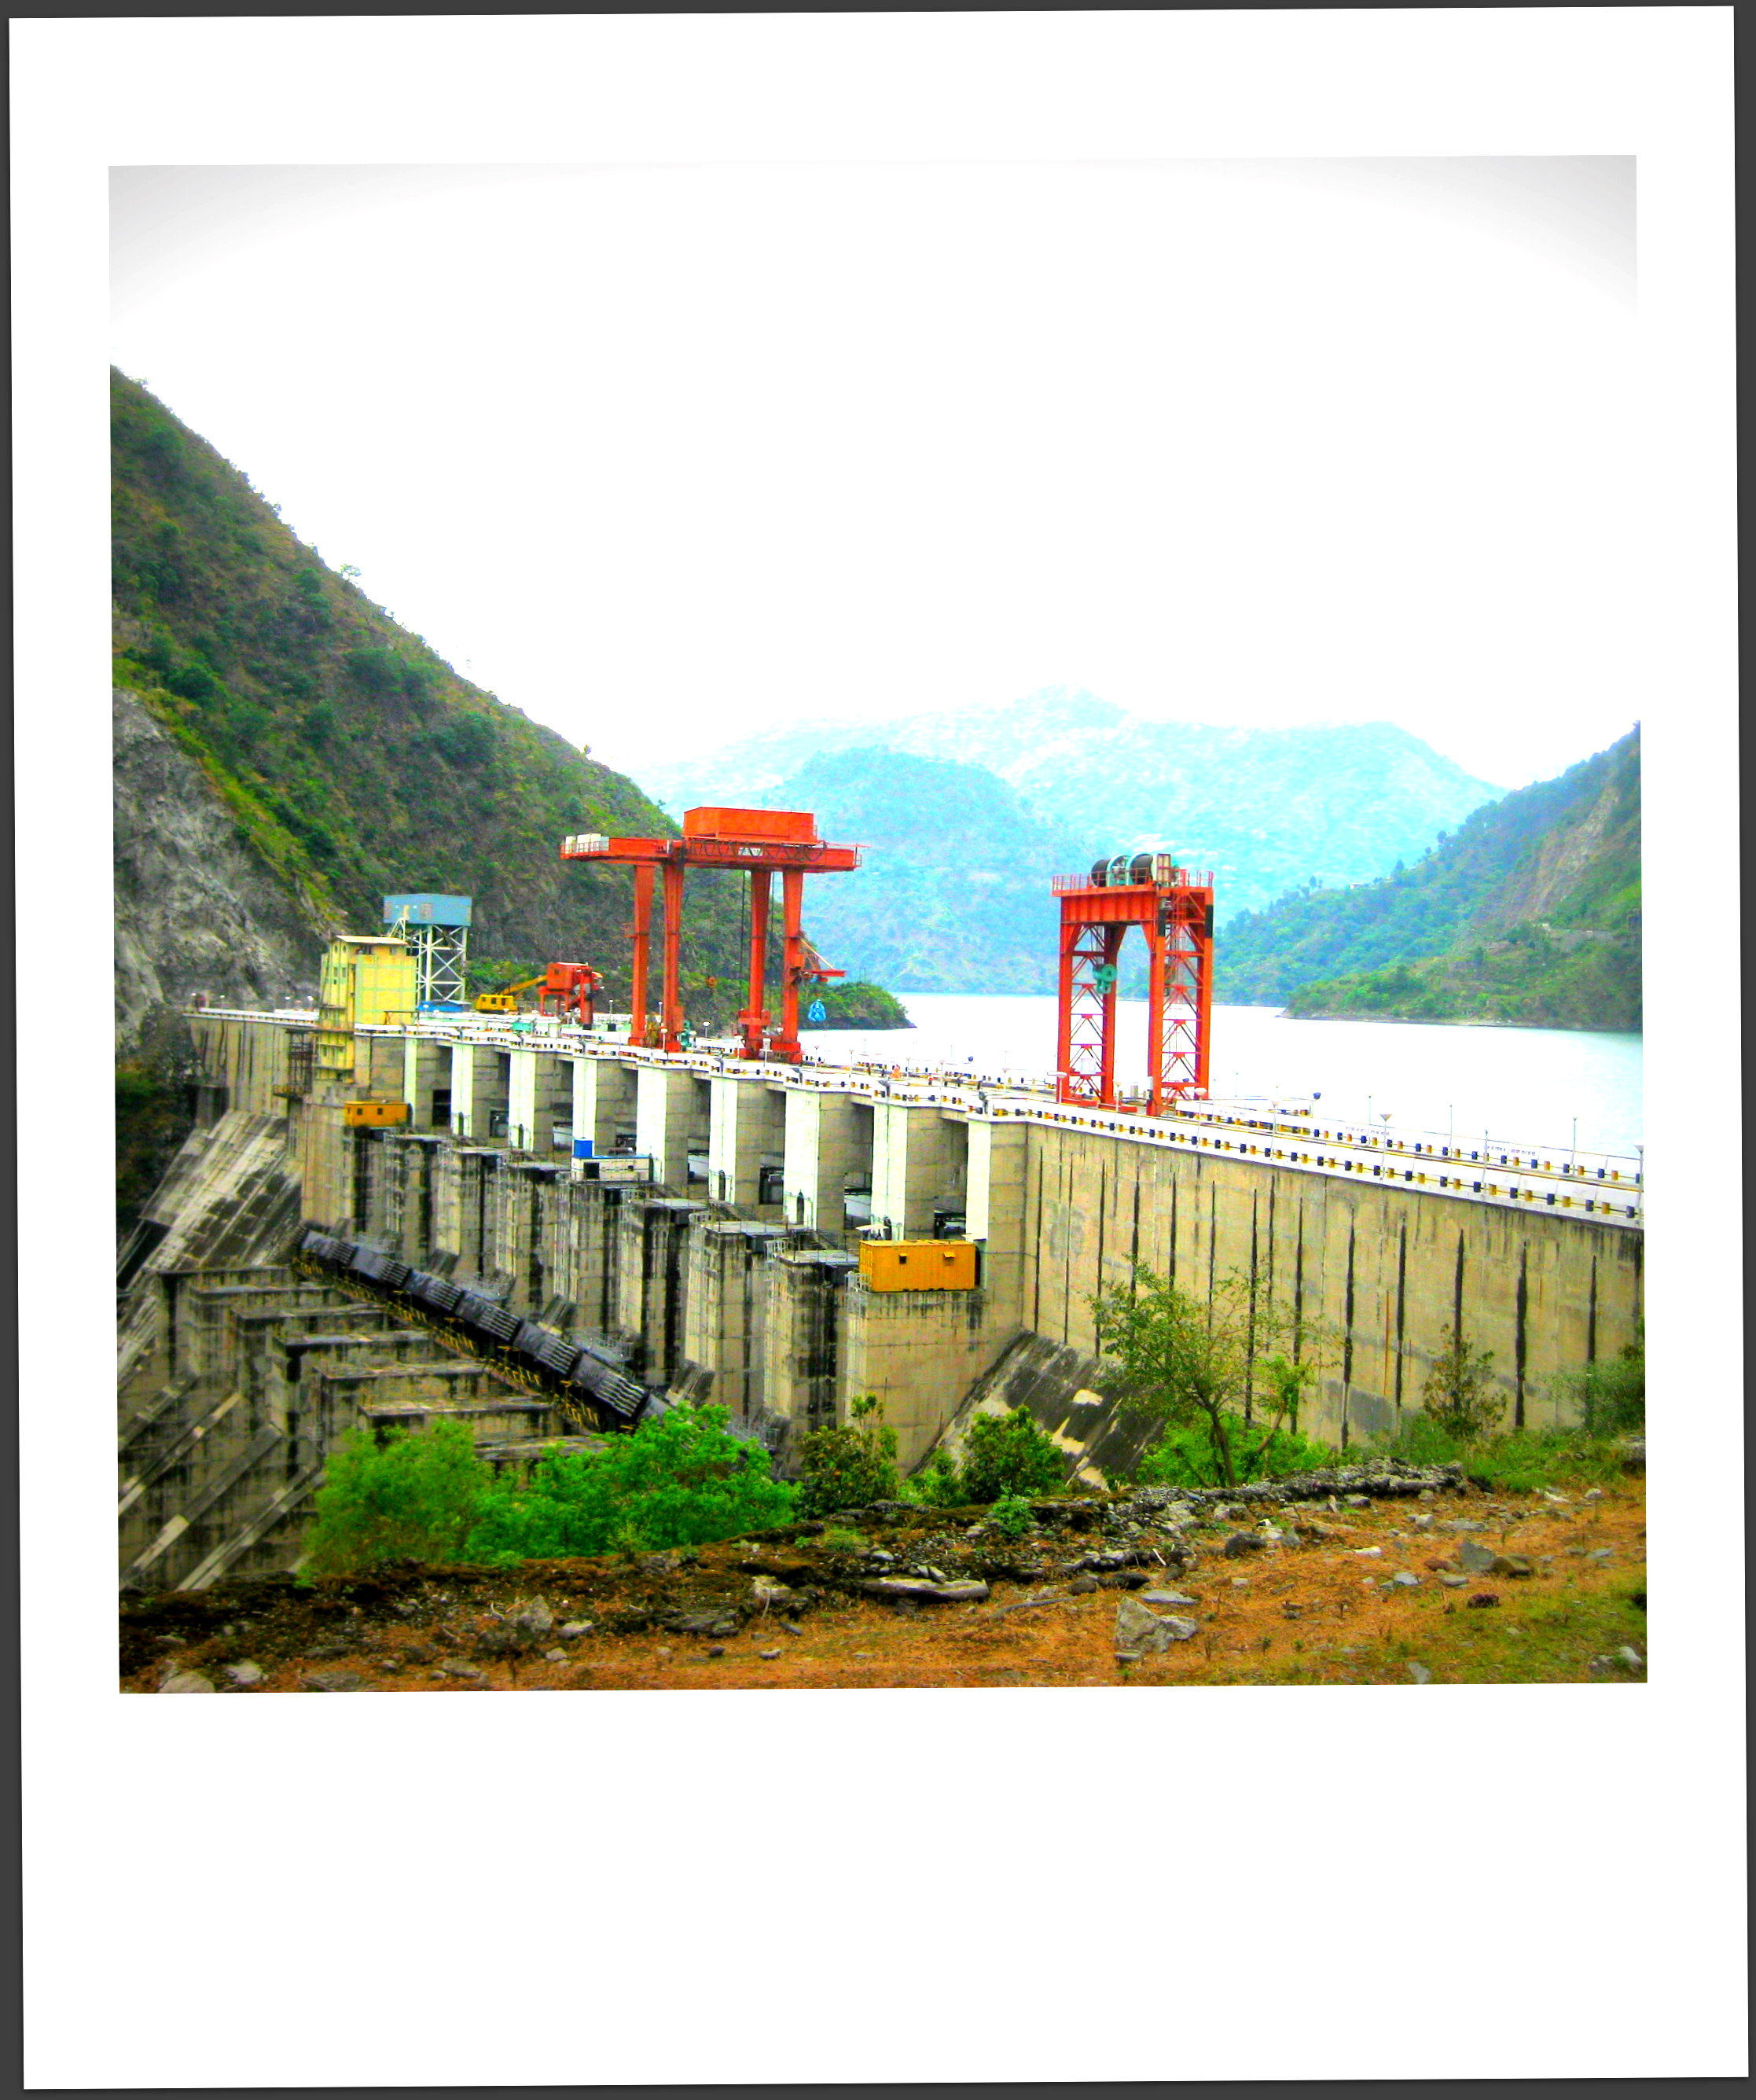 View of the Hydroelectric Power Station